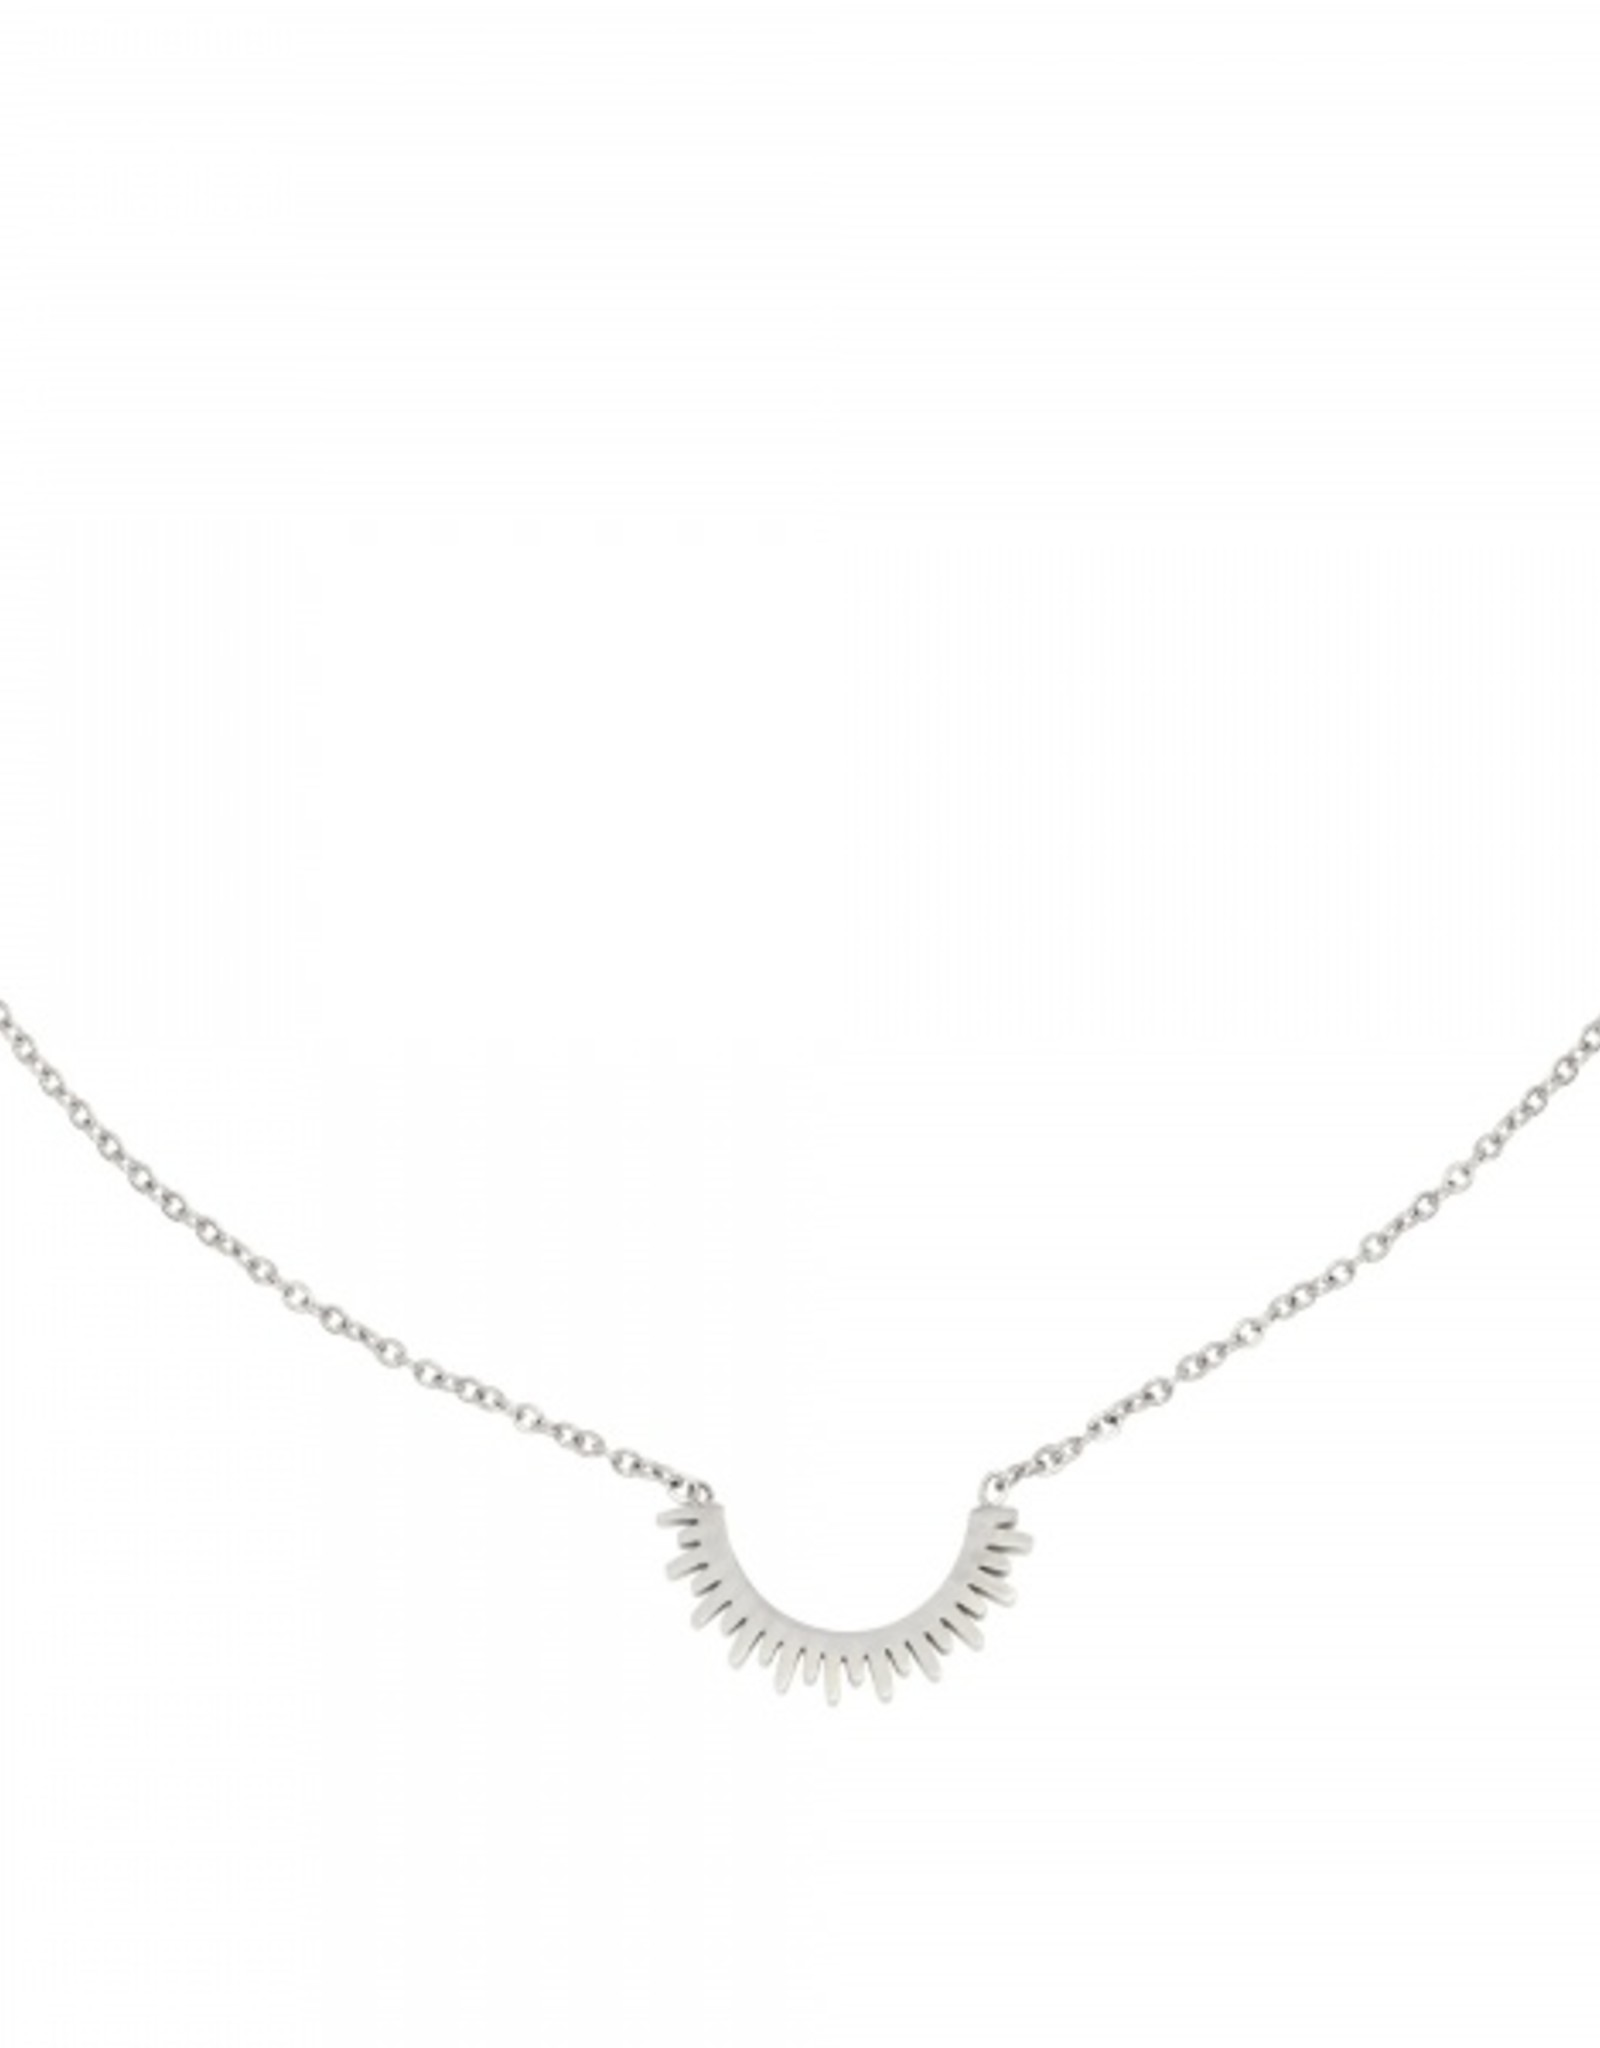 Make My Day Make My Day Necklace Silver Short